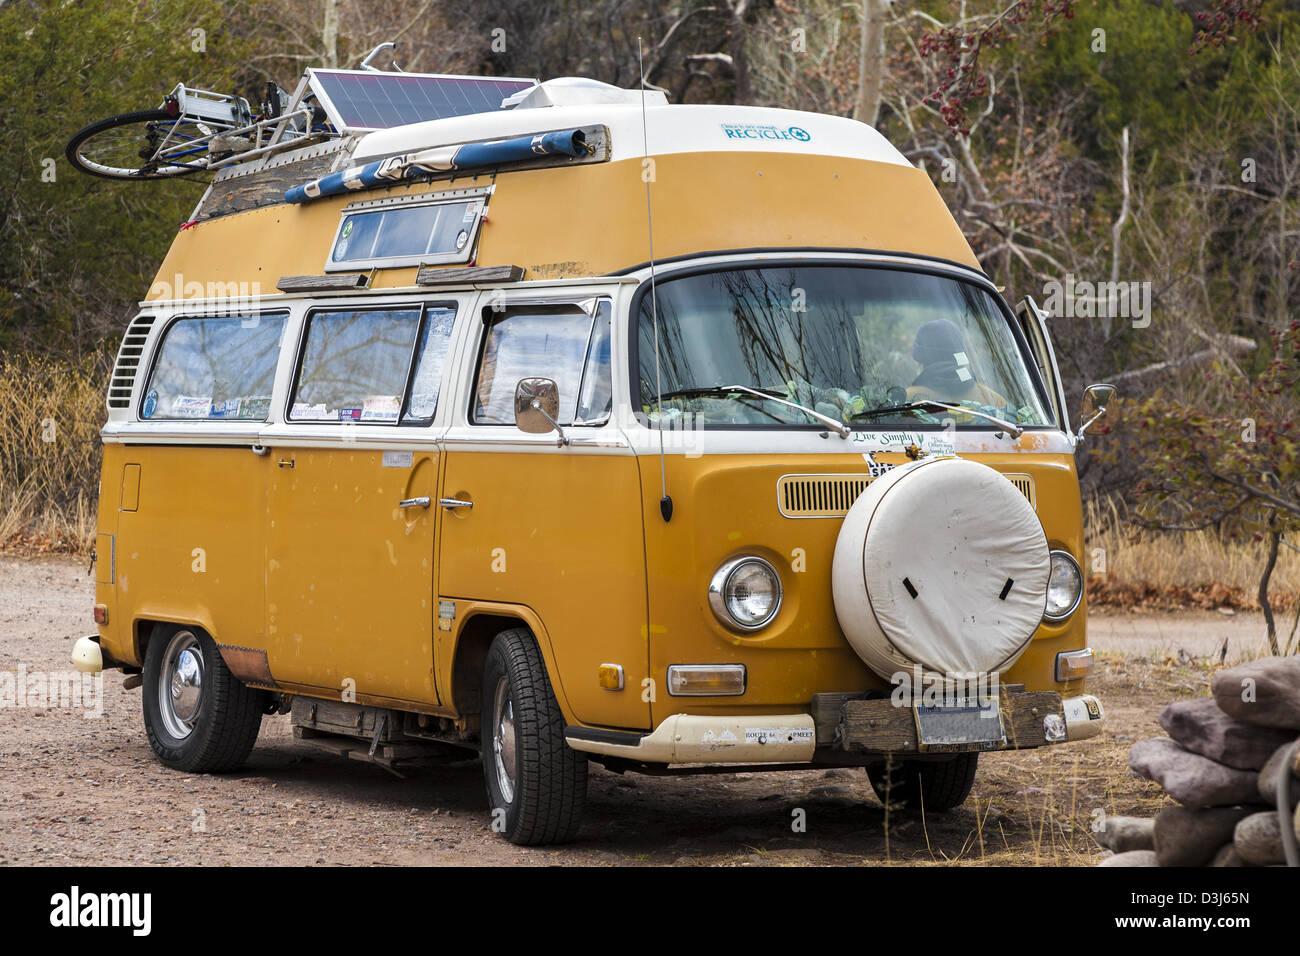 Classic Volkswagen Campervan With Solar Panel On The Roof